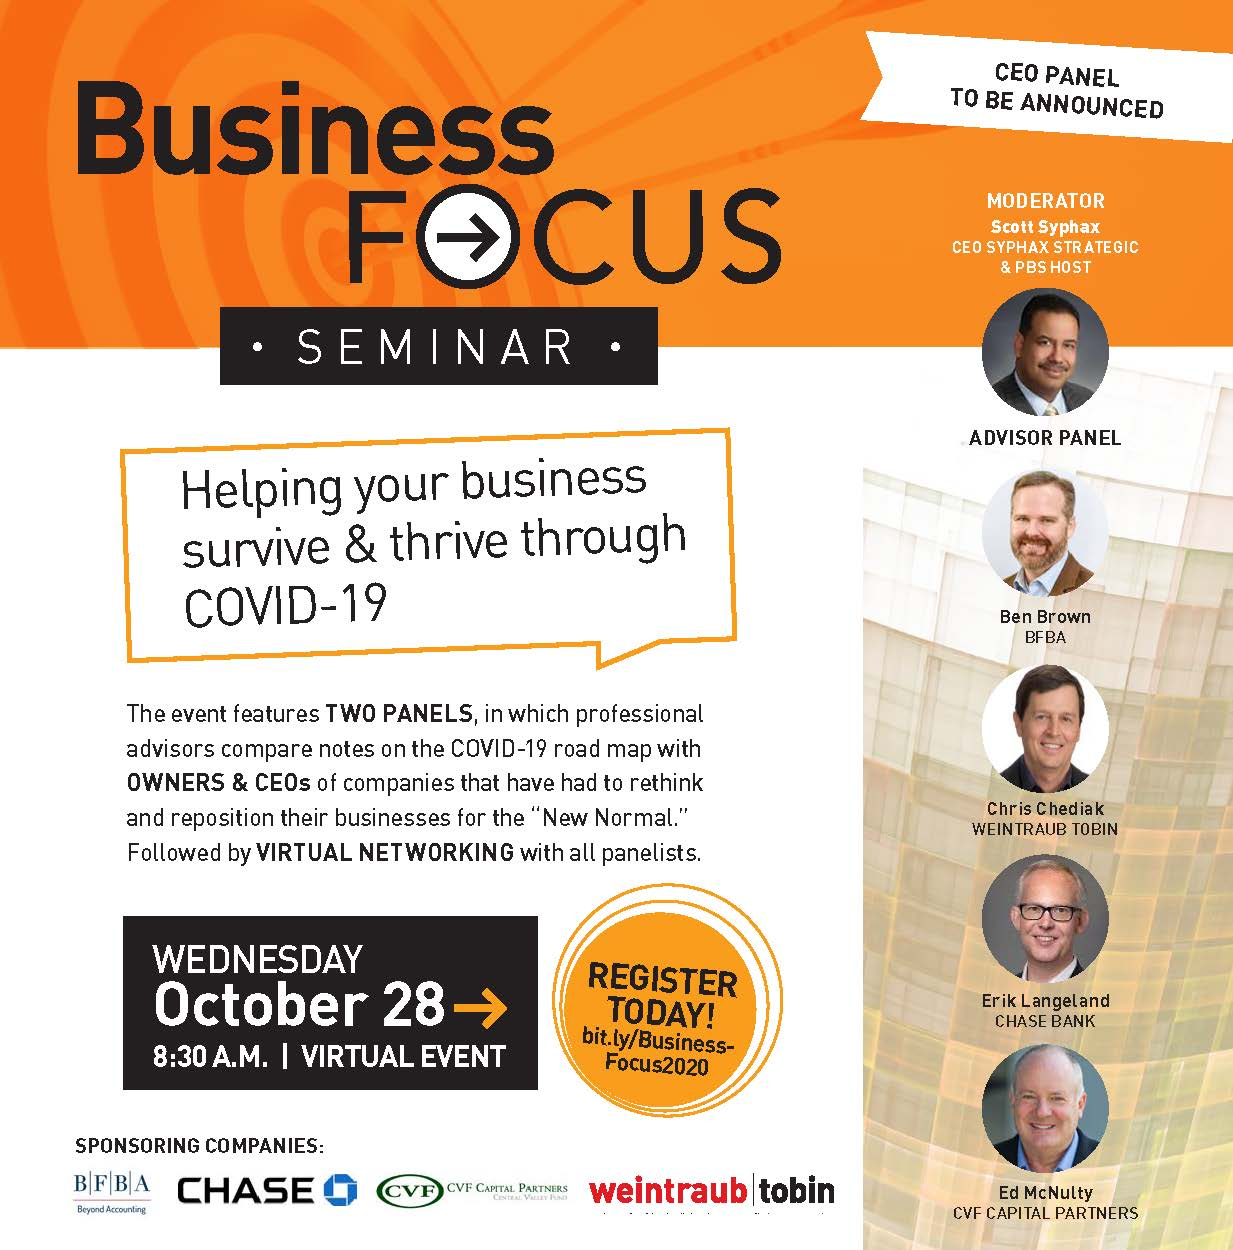 Business-Focus-COVID-Seminar---Registration-Flyer.jpg